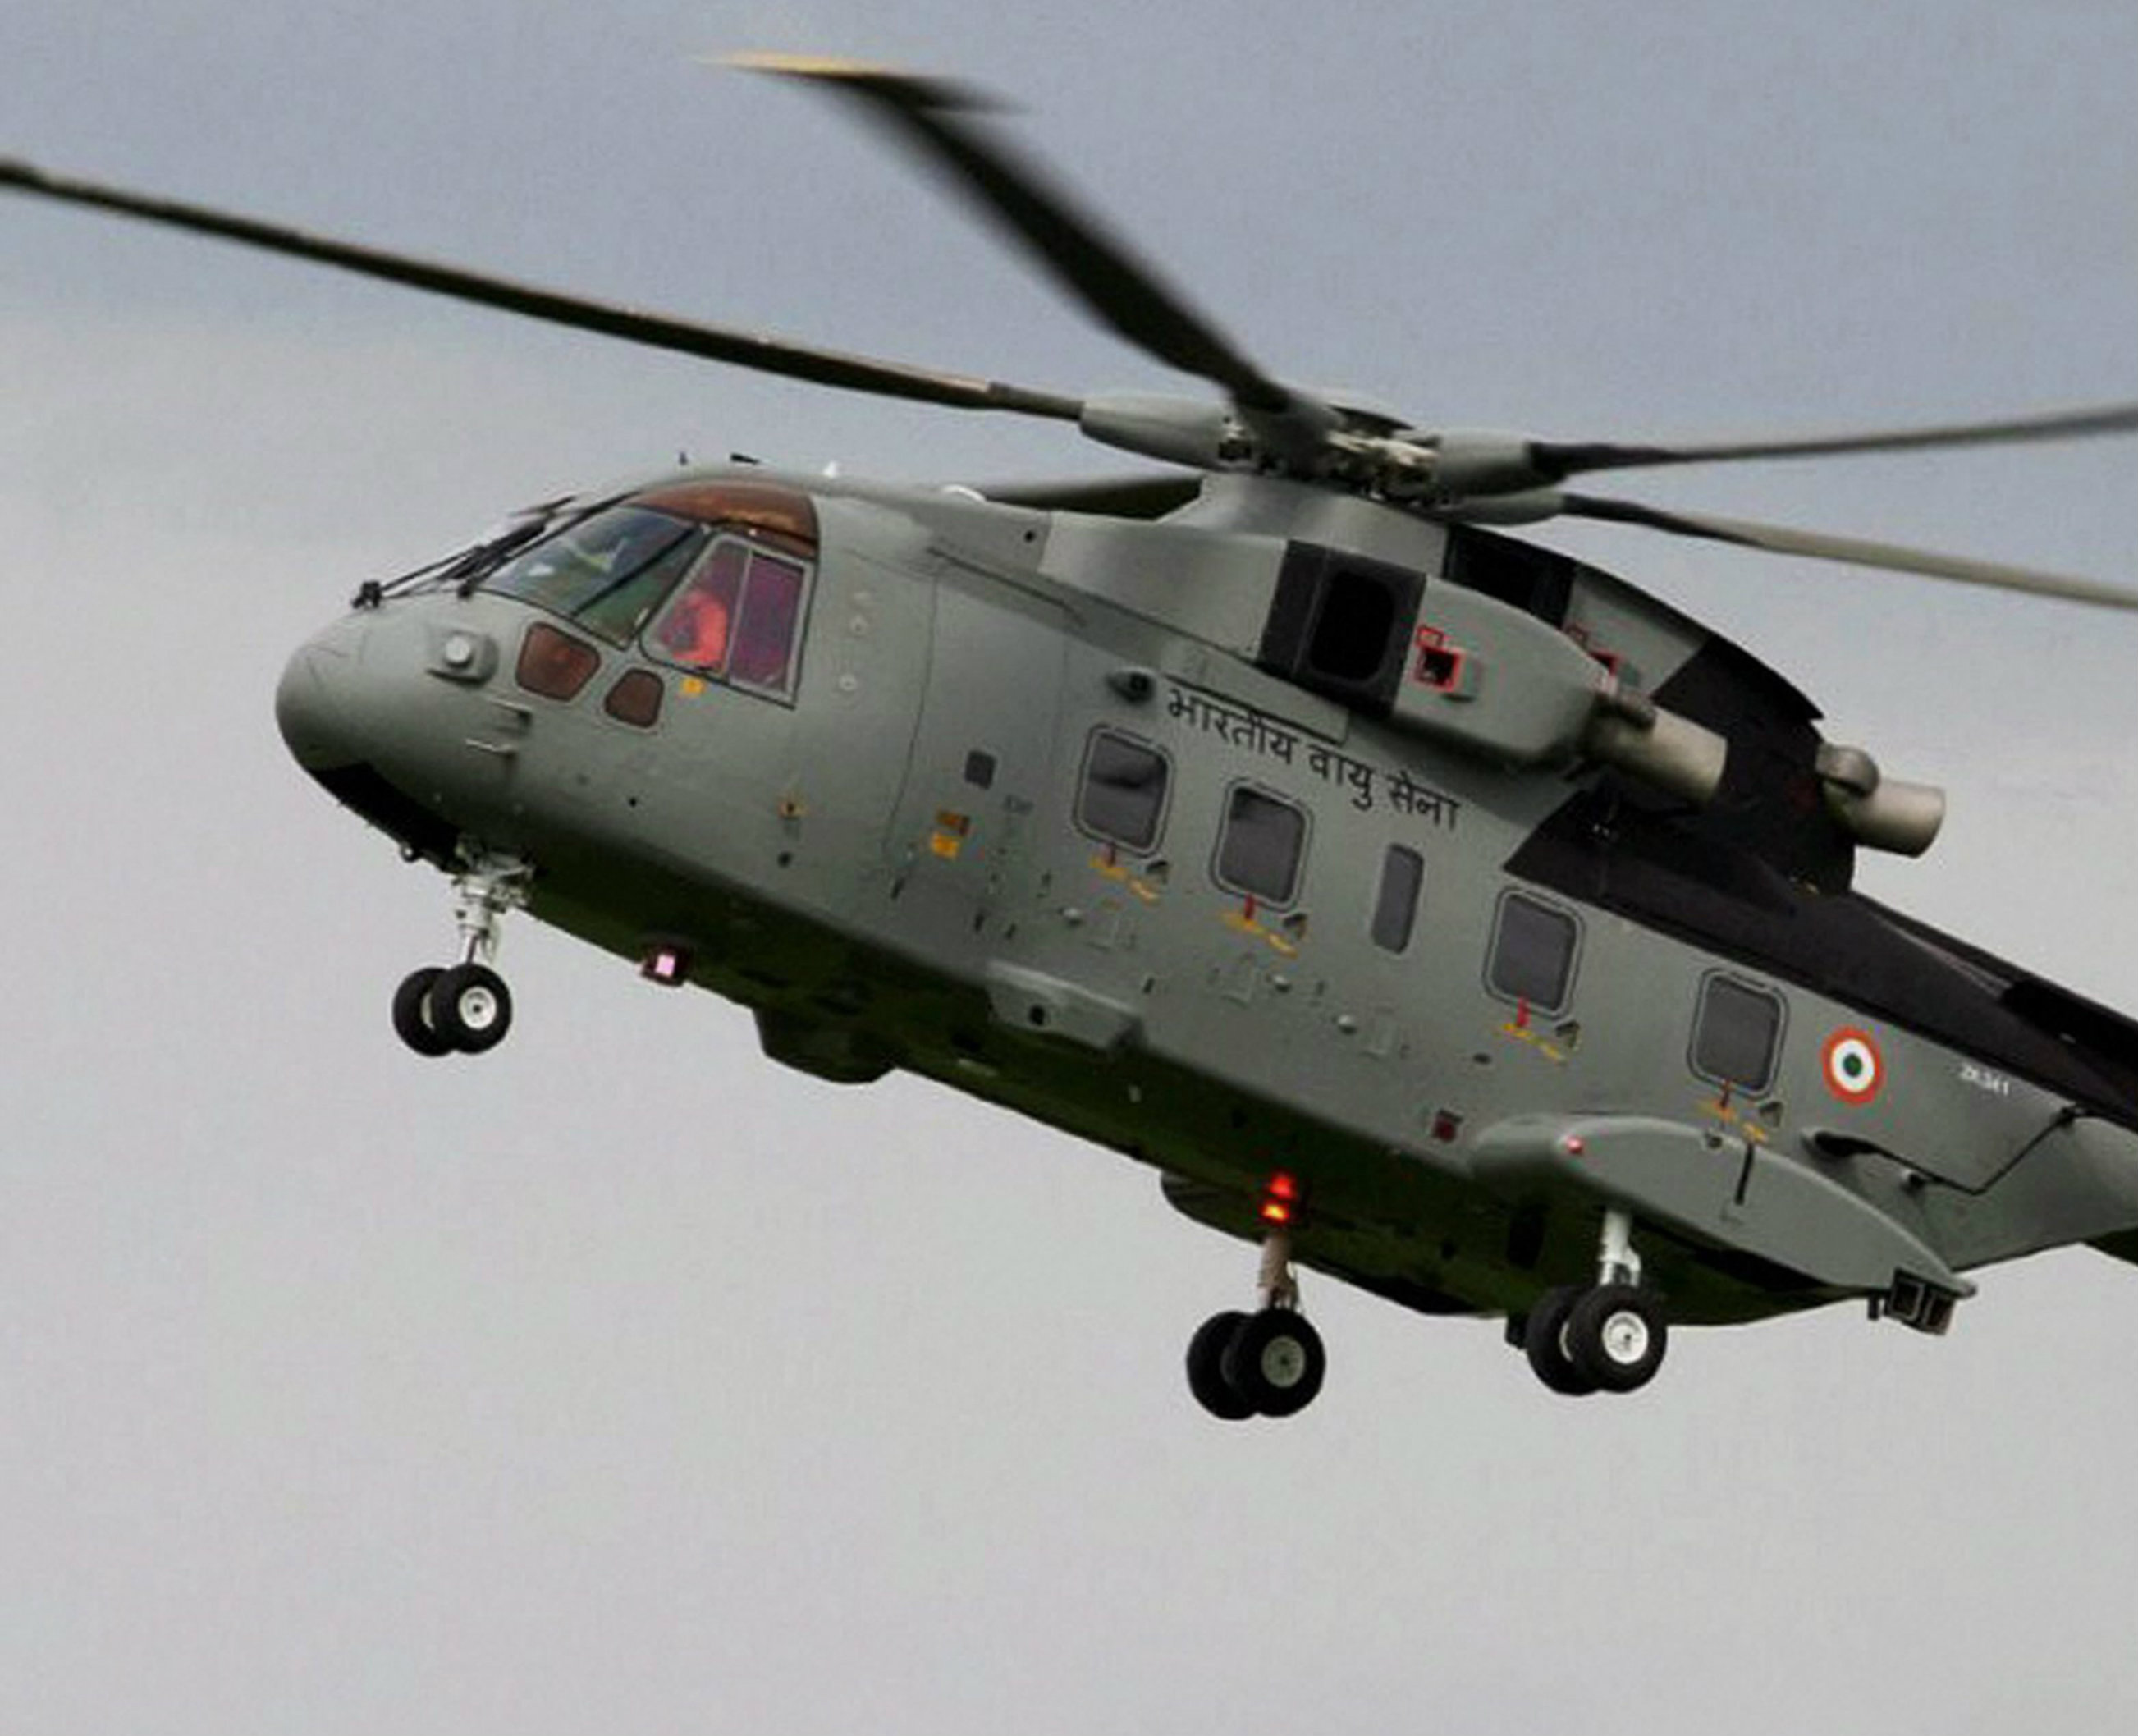 A file photo of an AgustaWestland VVIP helicopter.